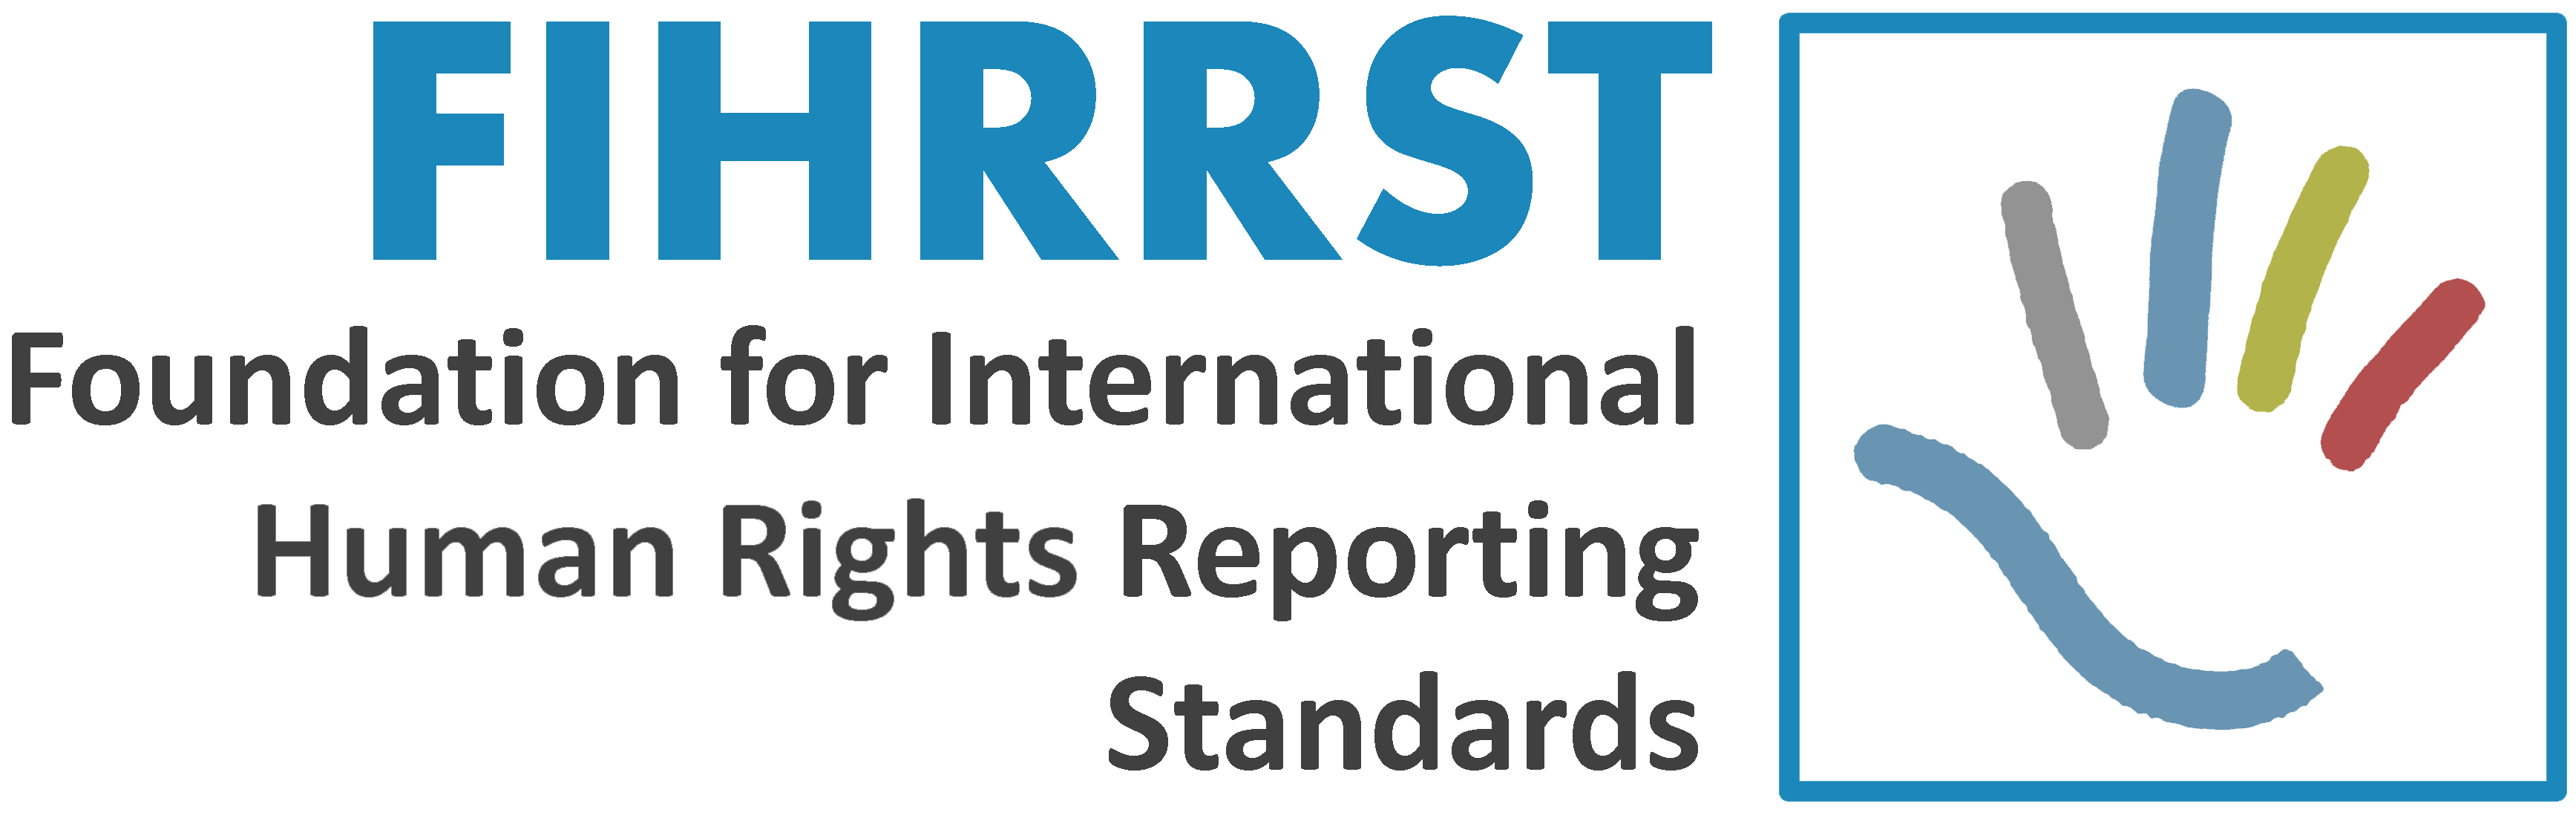 The Association For International Human Rights Reporting Standards (FIHRRST) AISBL